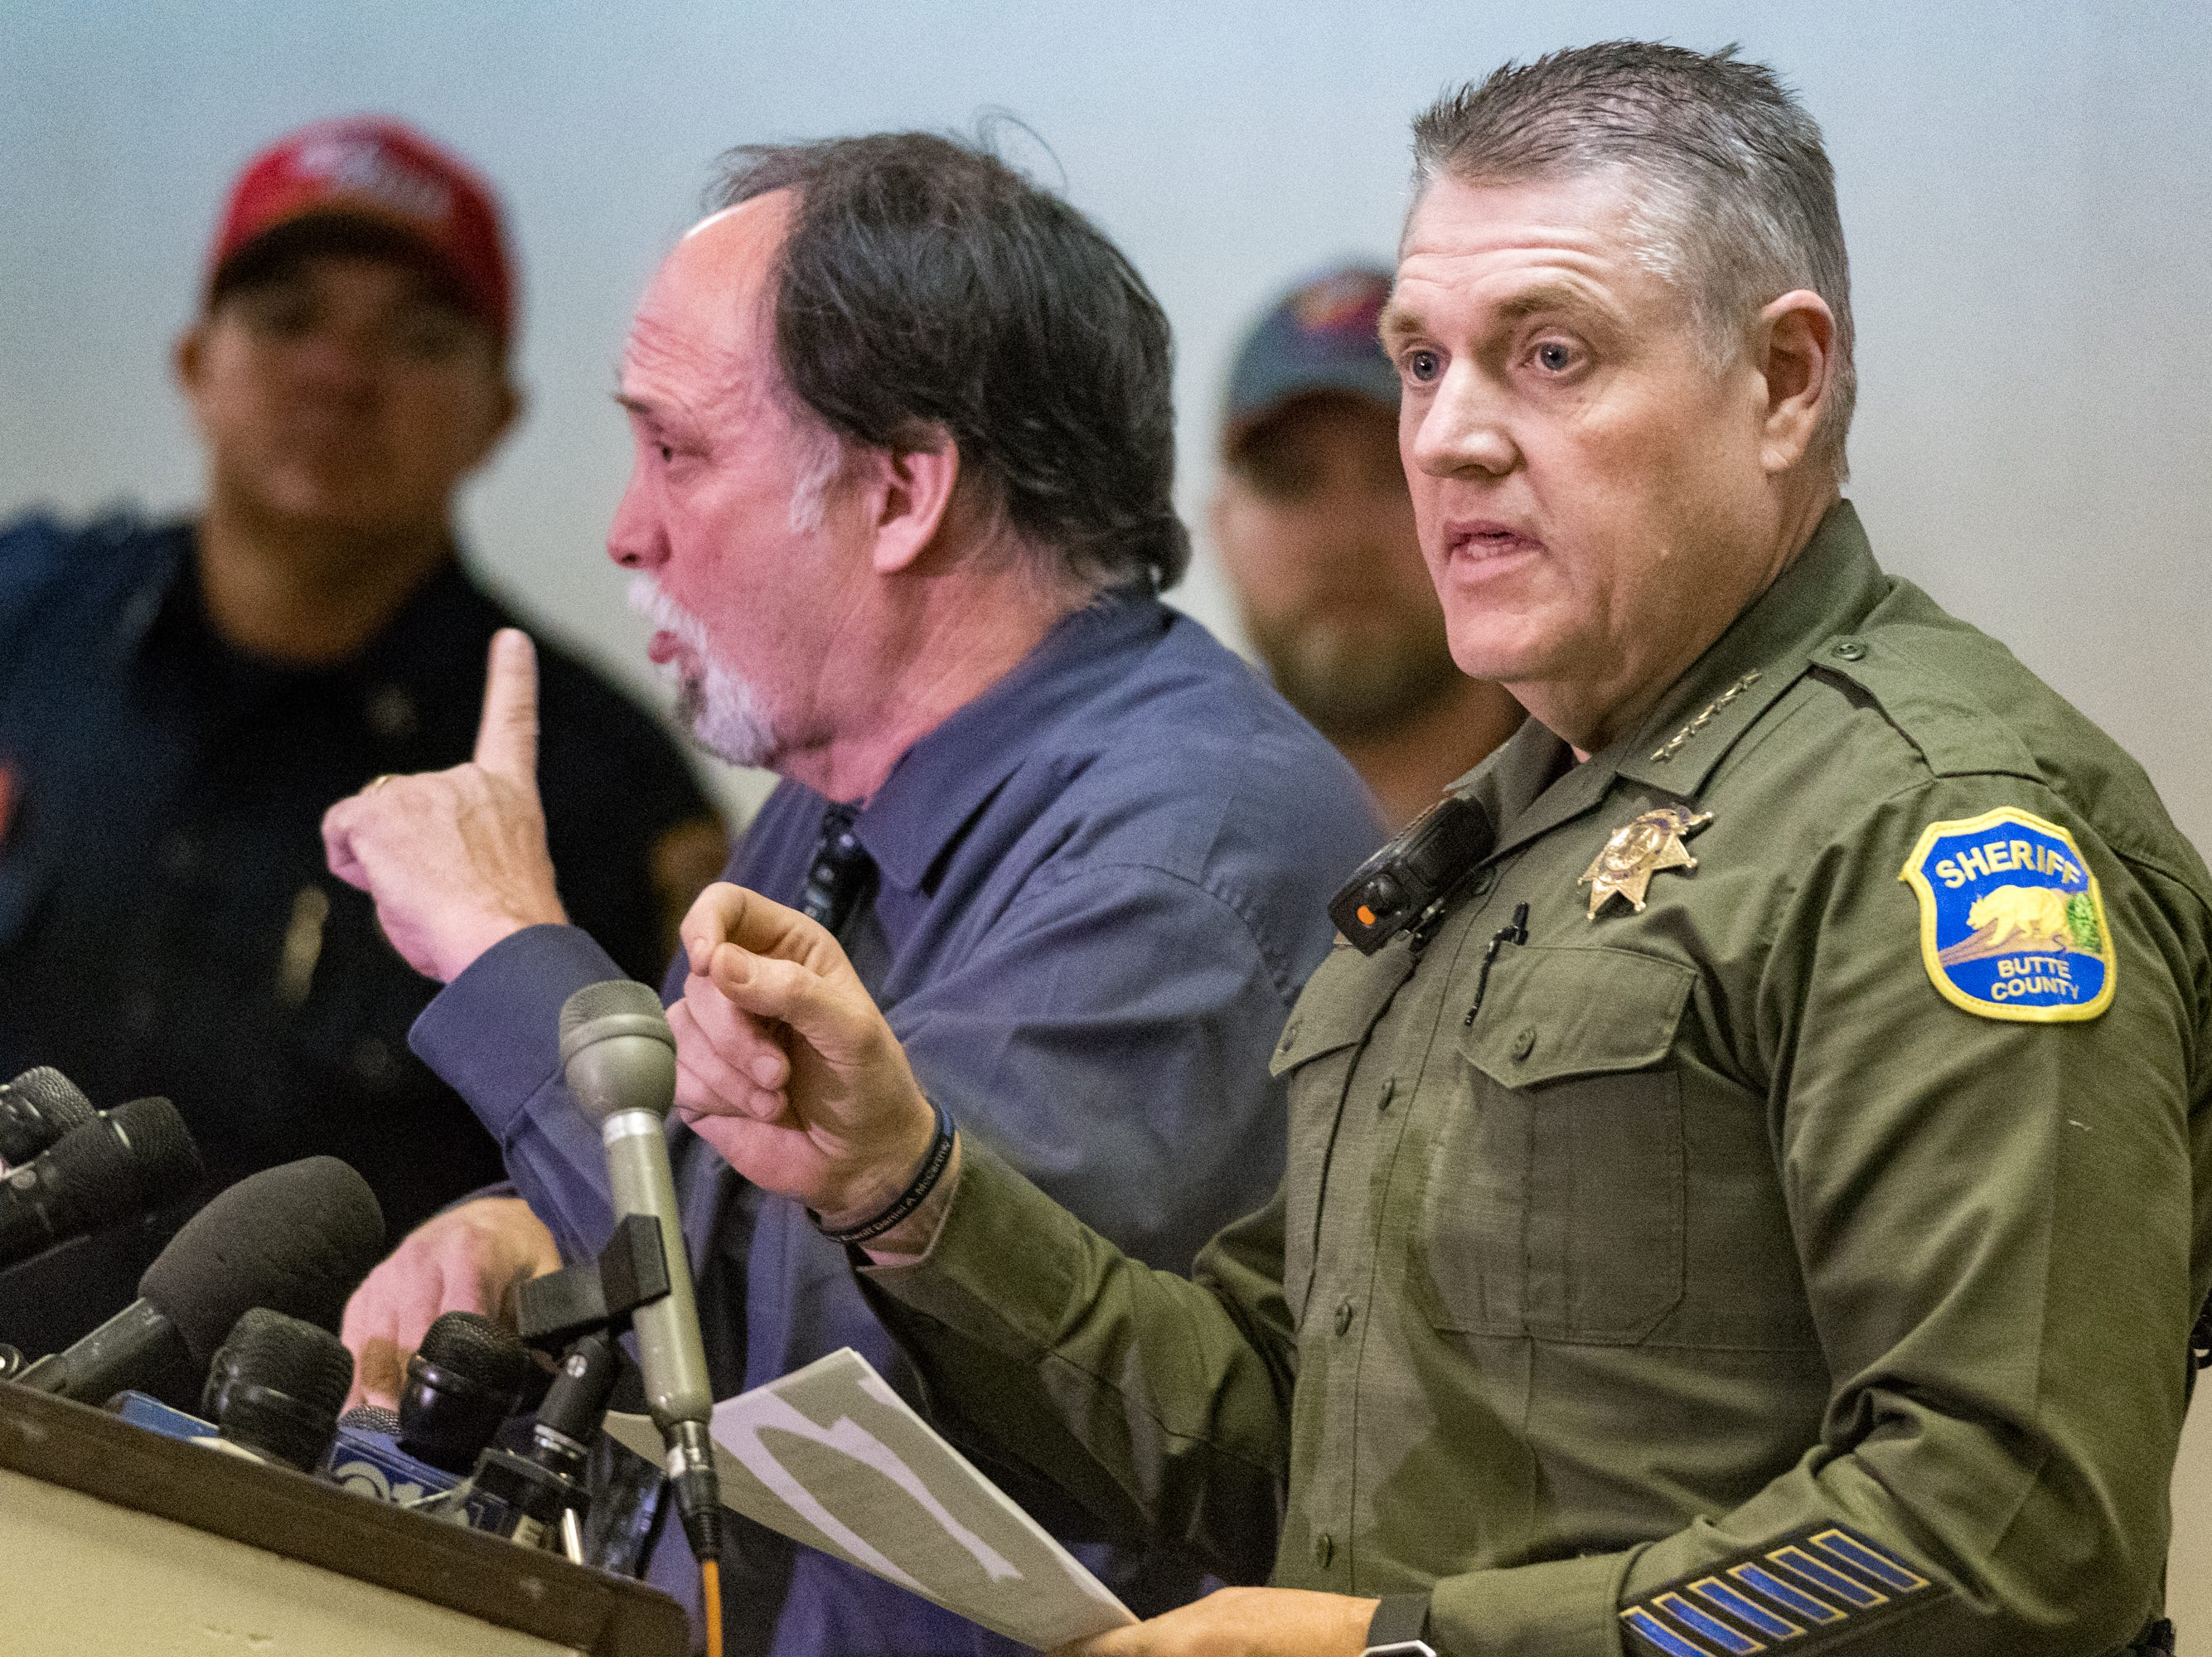 Kory L. Honea -Sheriff of Butte County speaking at Press Conference. Sunday, Nov. 11, 2018.